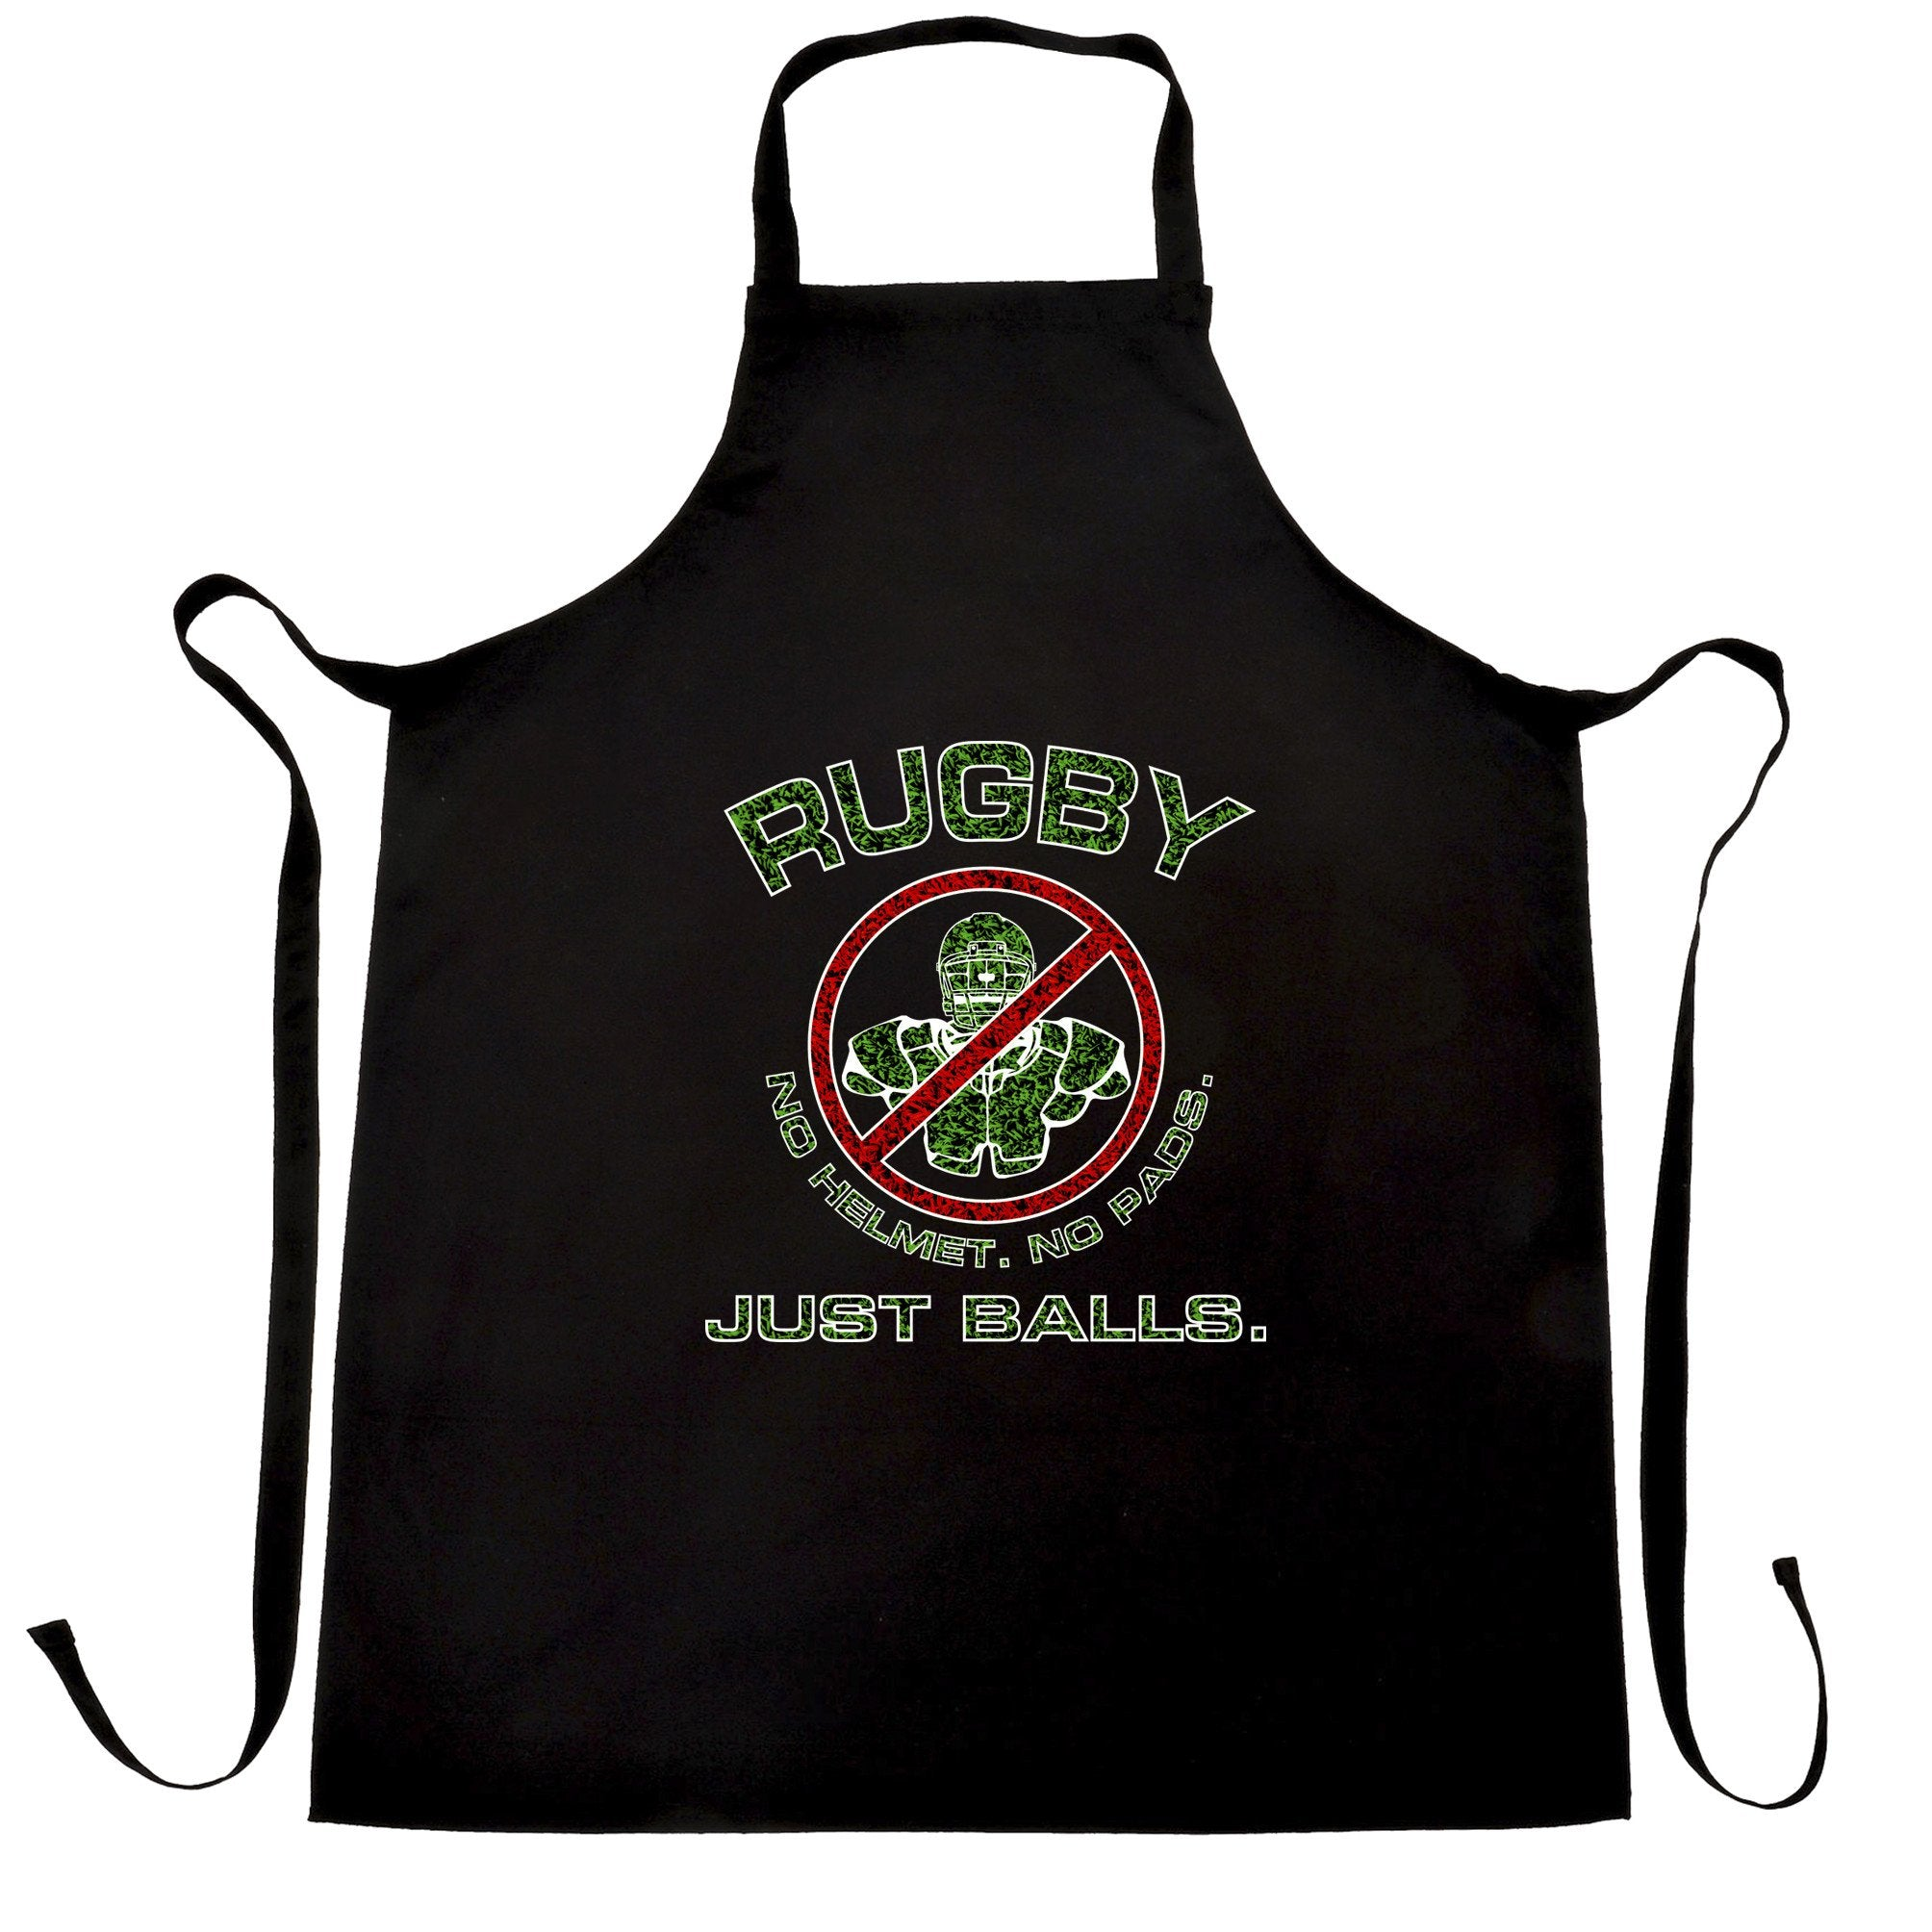 Novelty Rugby Chef's Apron No Helmet. No Pads. Just Balls.